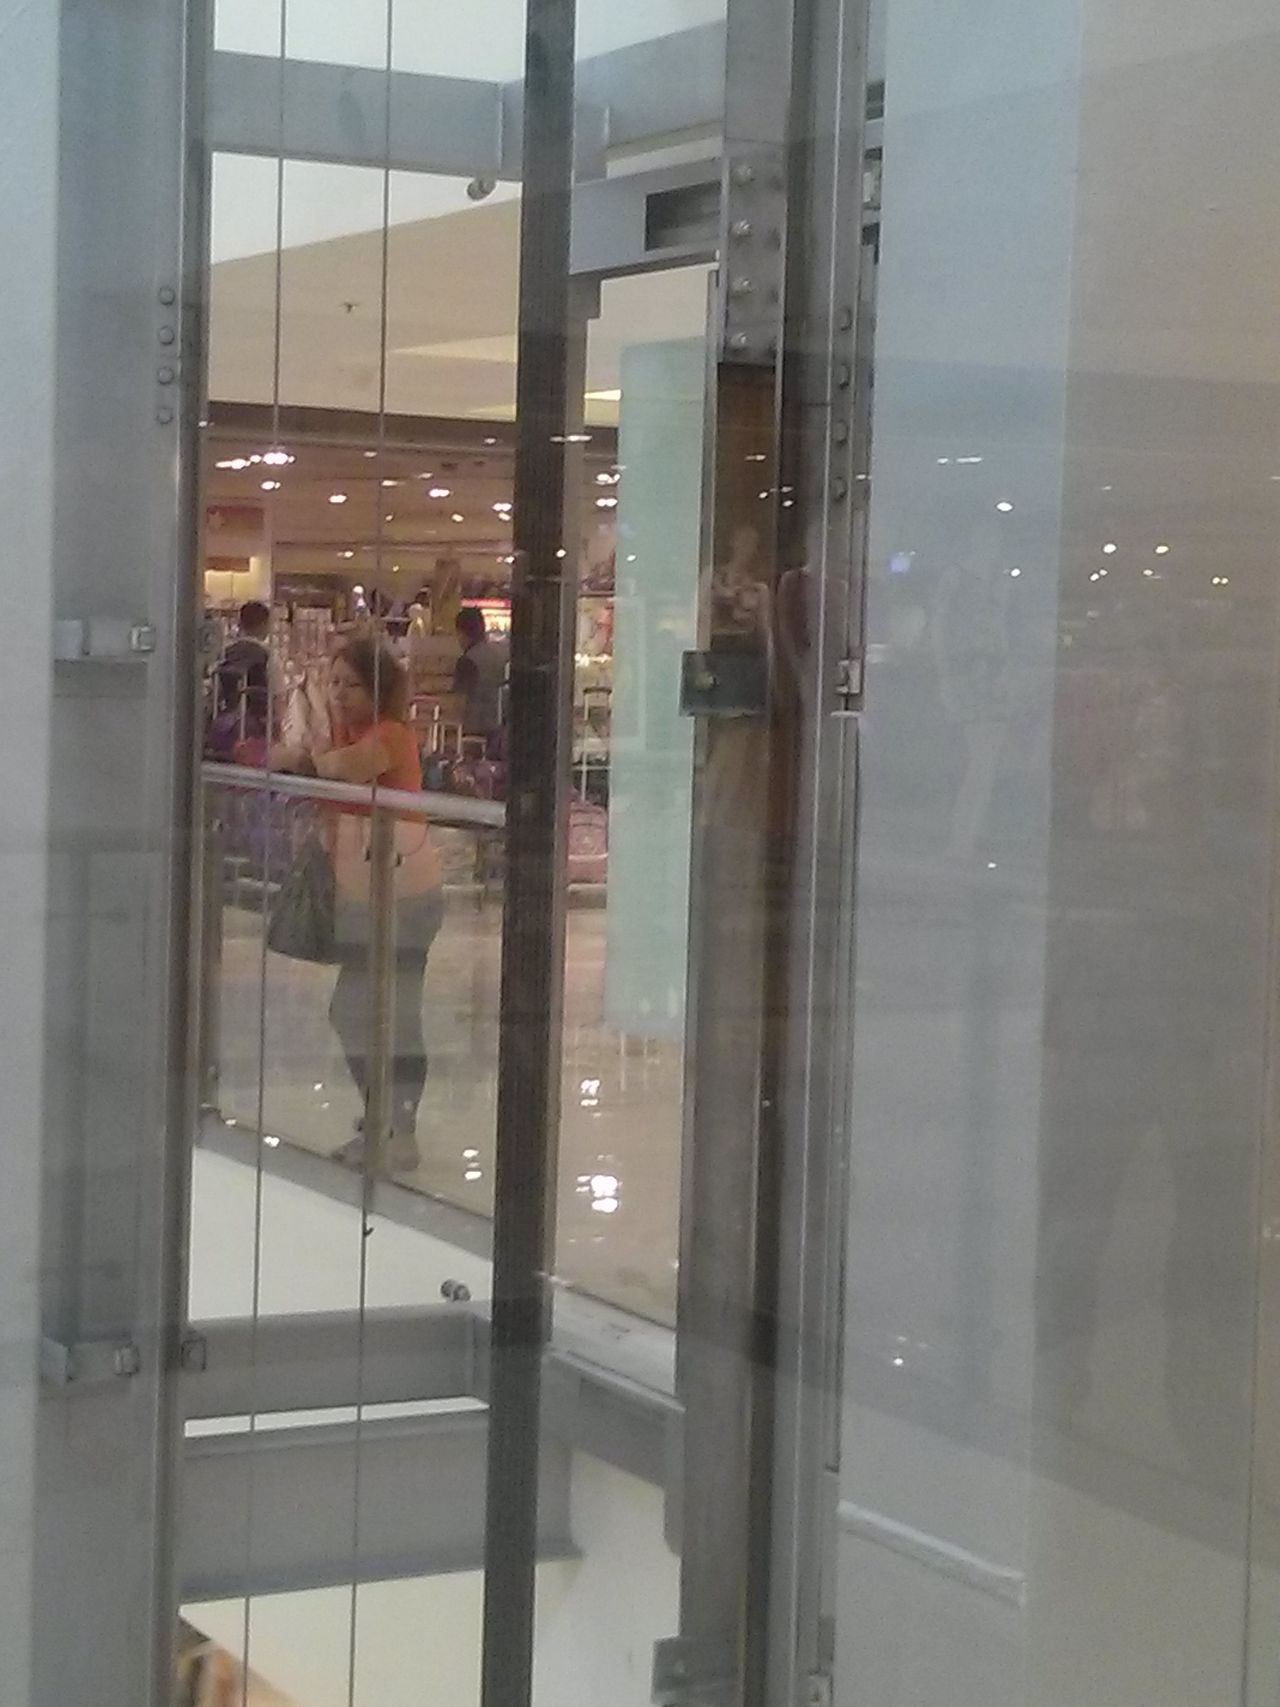 Alone Architecture Asian  Asian Culture Built Structure Day Glass - Material Hideous Indoors  Large Group Of People Lifestyles Loner Life Looking Through Window Men People Praying Real People Reflection Retail  Scandal Store Window Transparent Waiting Window Women First Eyeem Photo